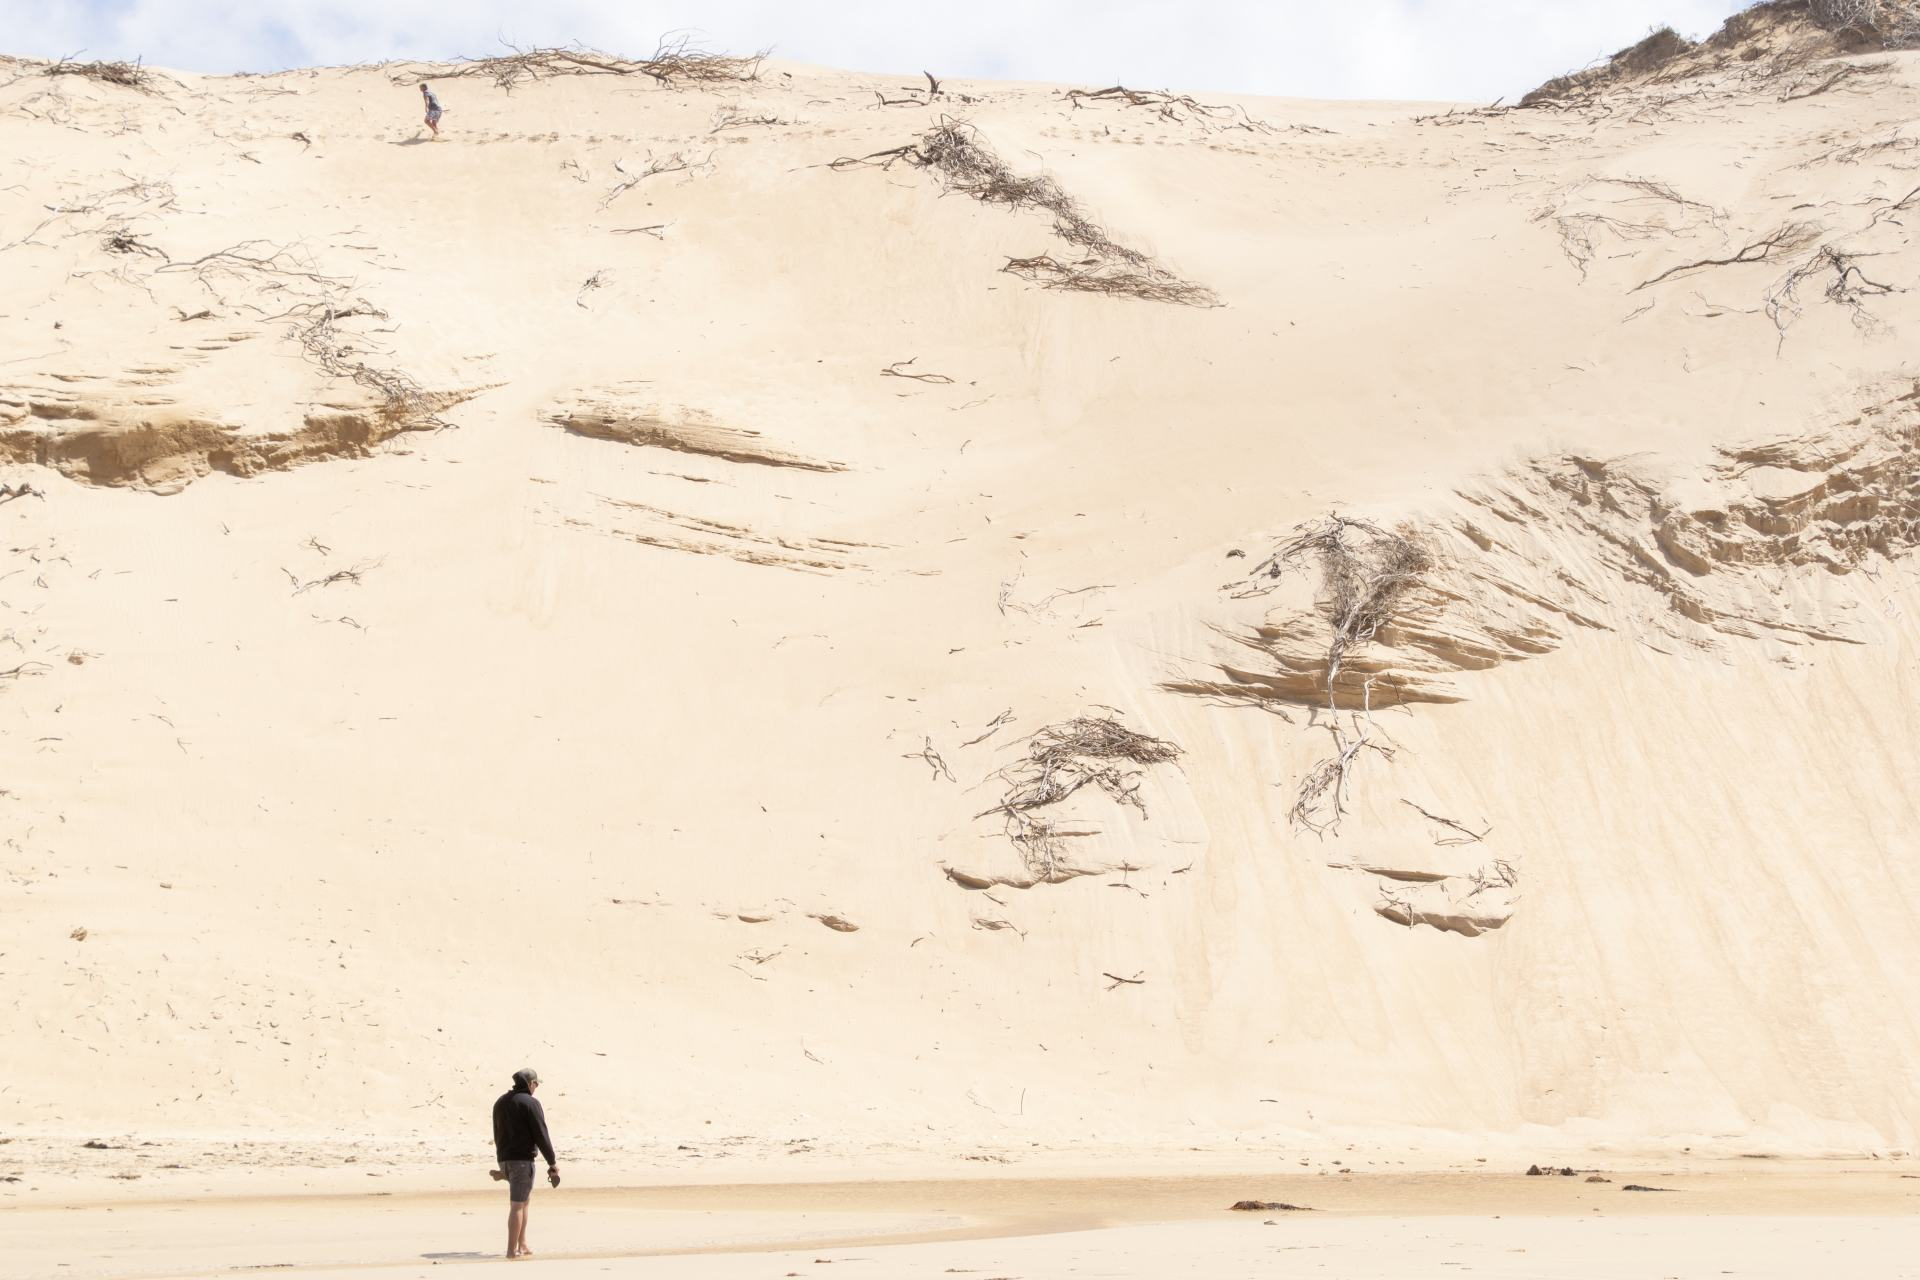 sand dunes at wilsons prom